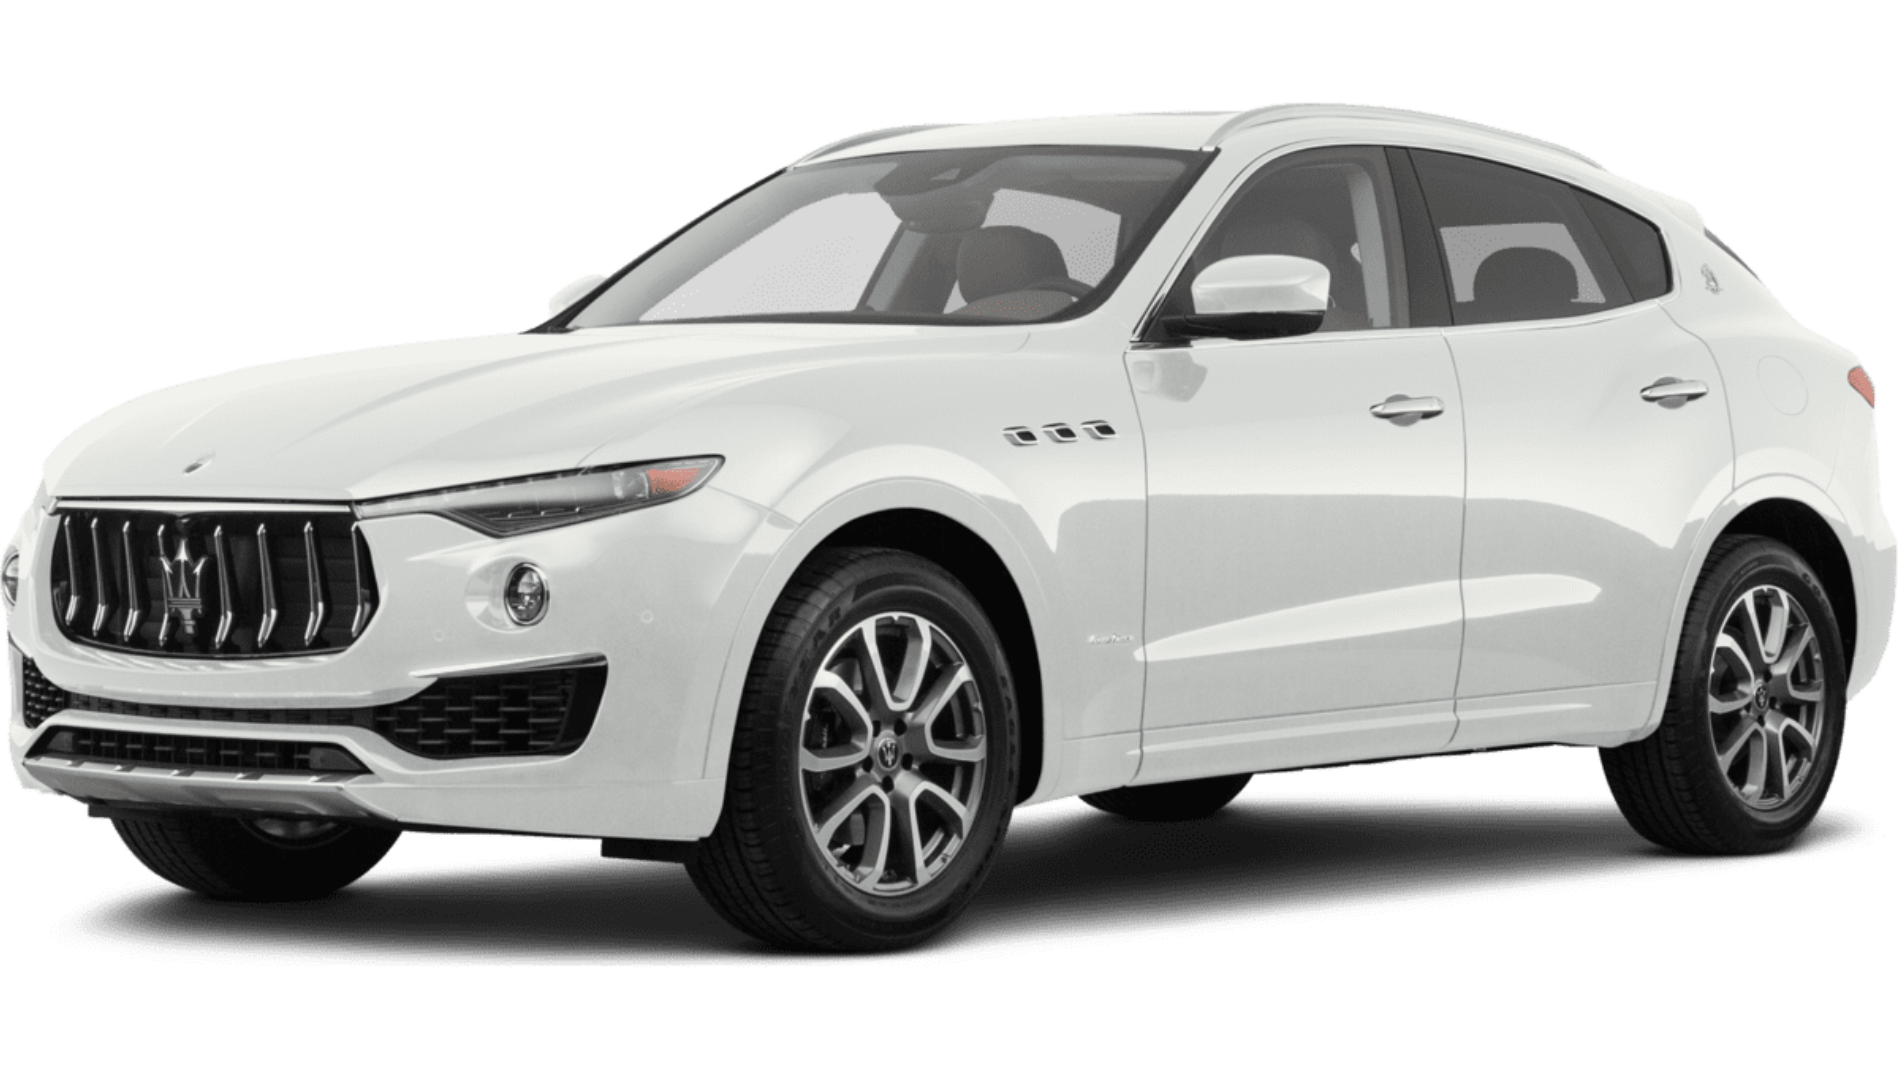 Maserati Levante - Ace Race Tours and Travels